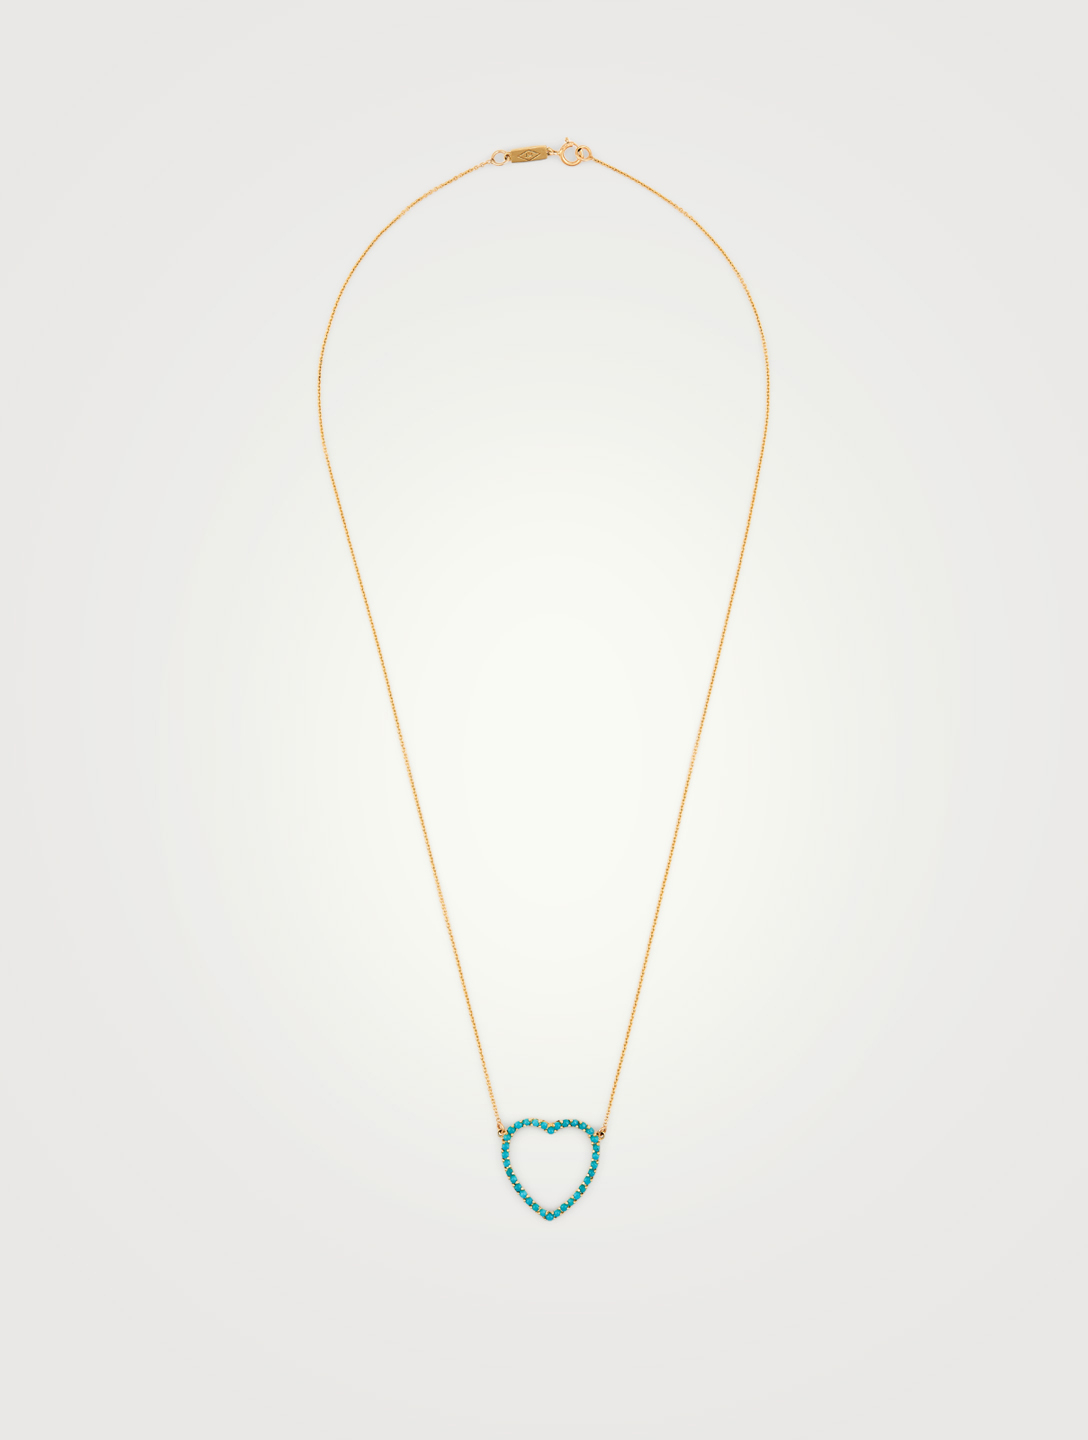 JENNIFER MEYER Large Gold Turquoise Open Heart Necklace Women's Gold